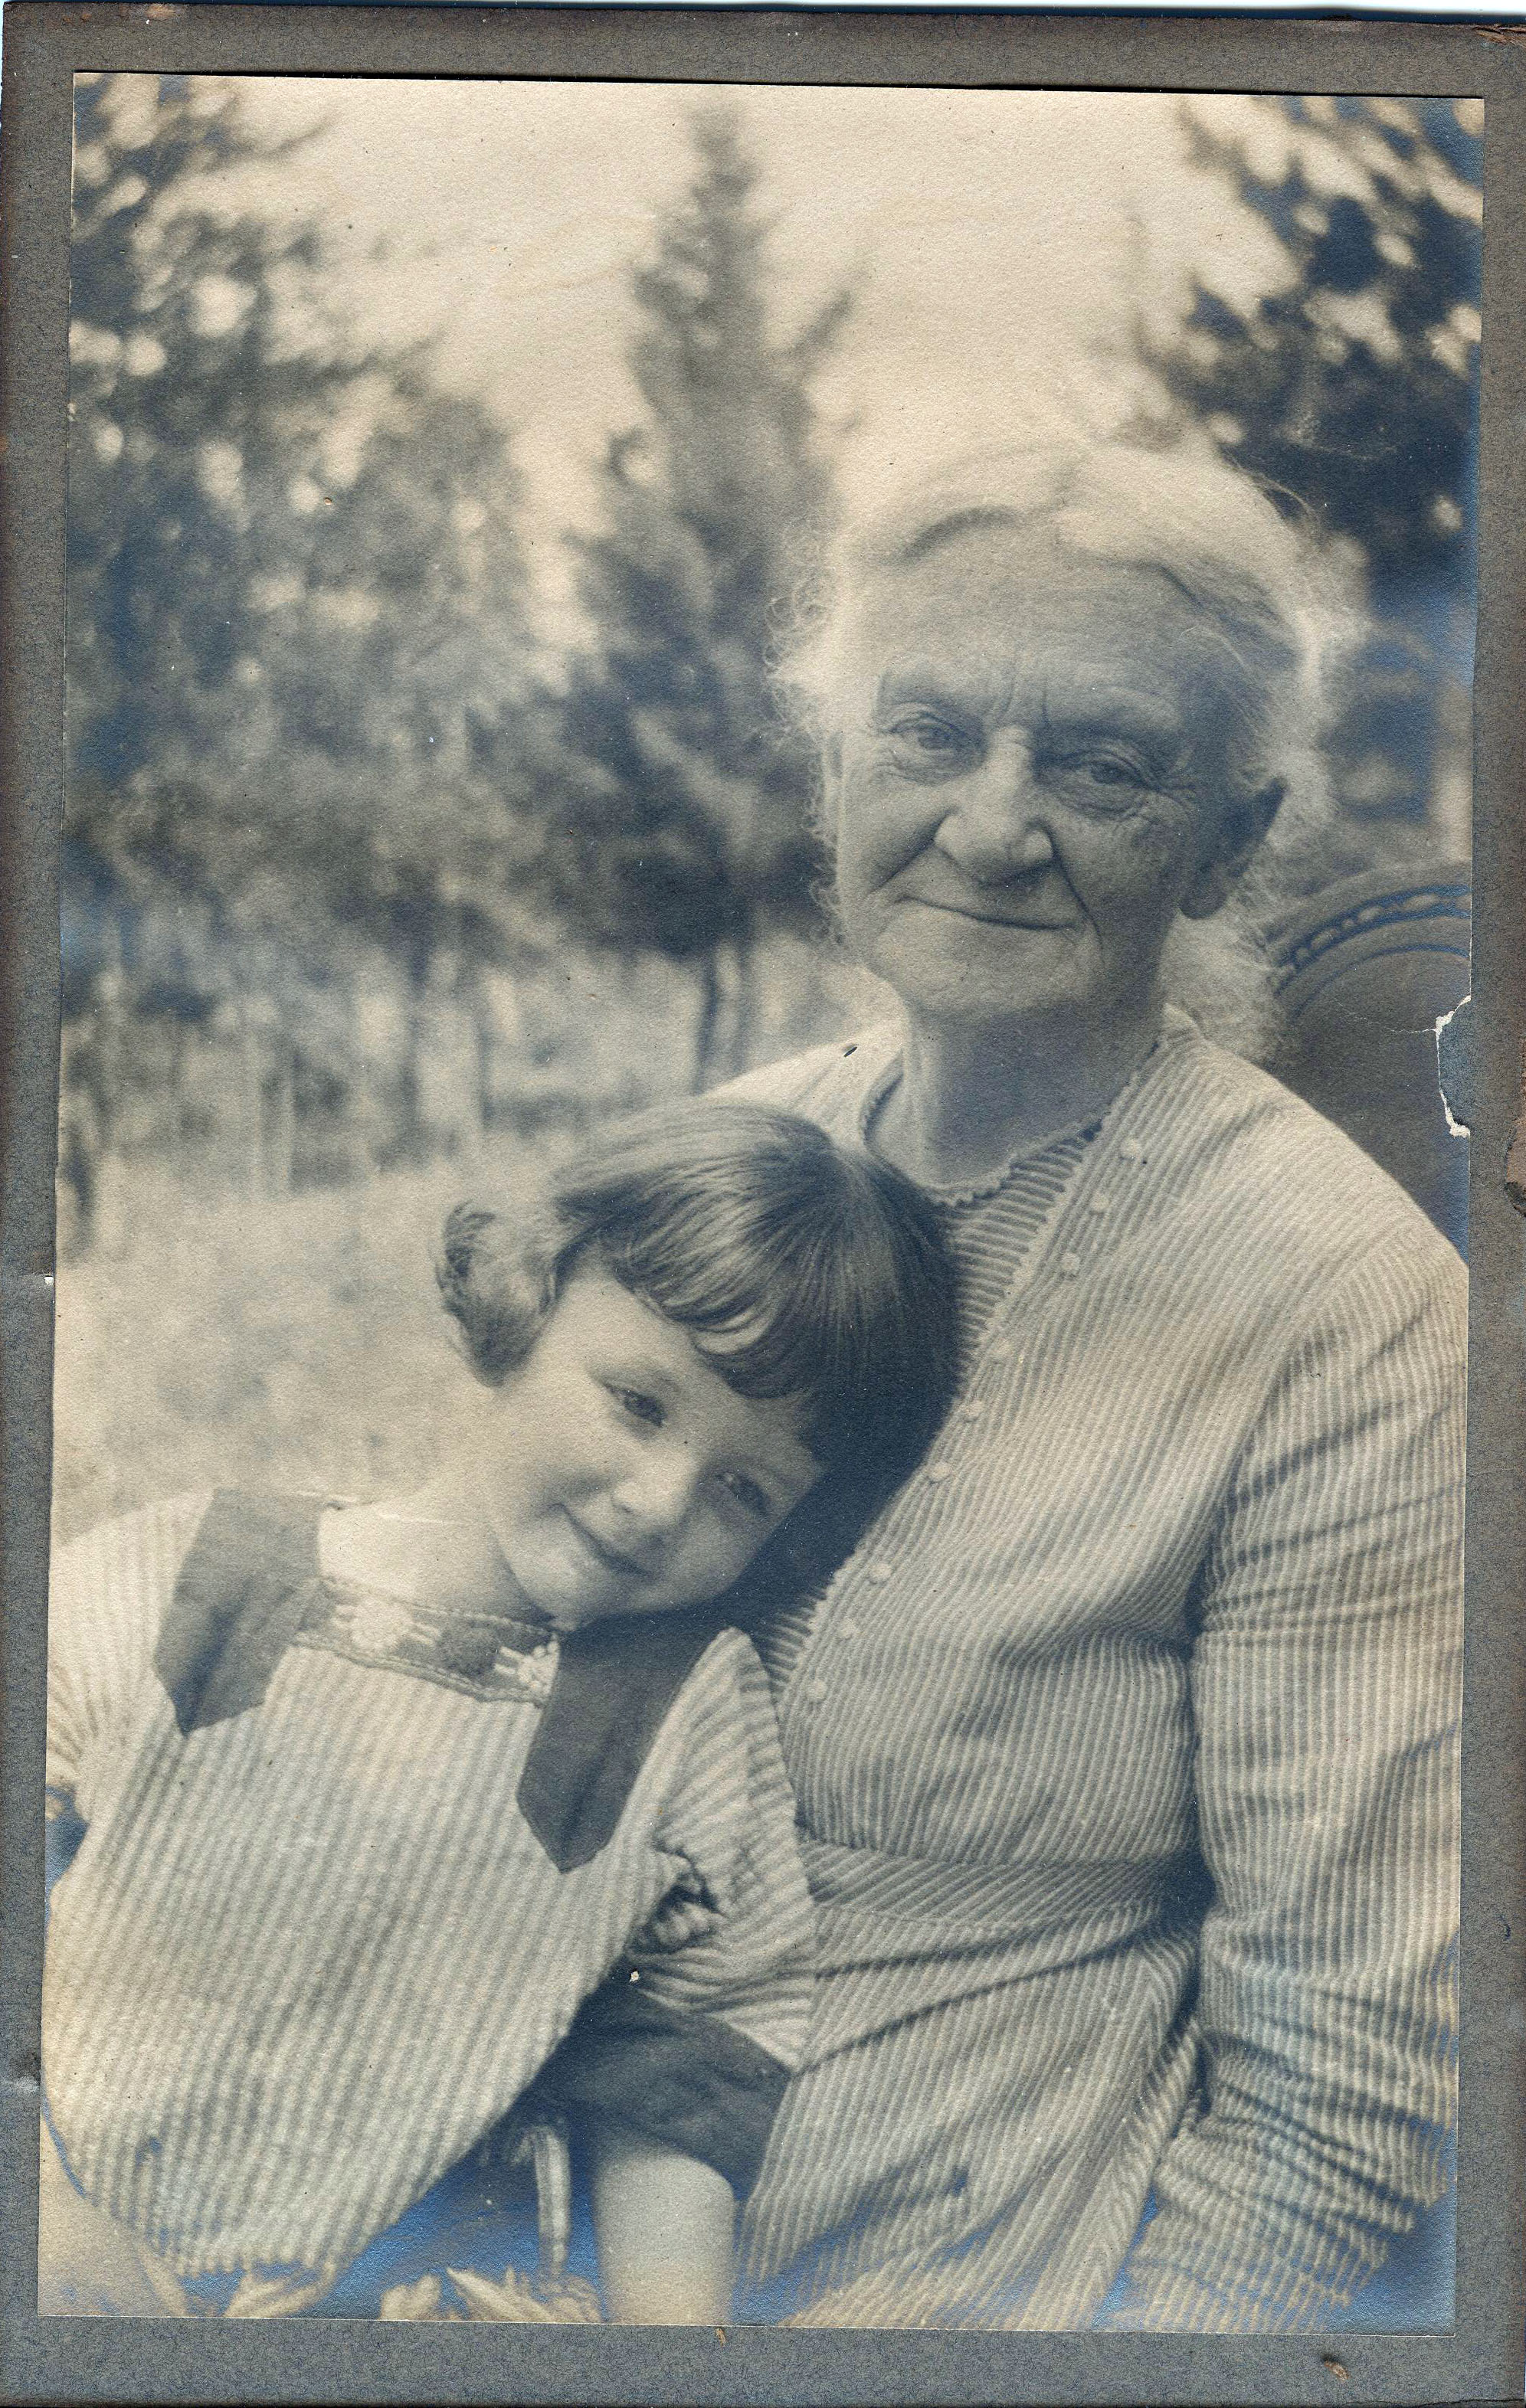 Eloise Ball and grandmother, Frances Cotton Steinke